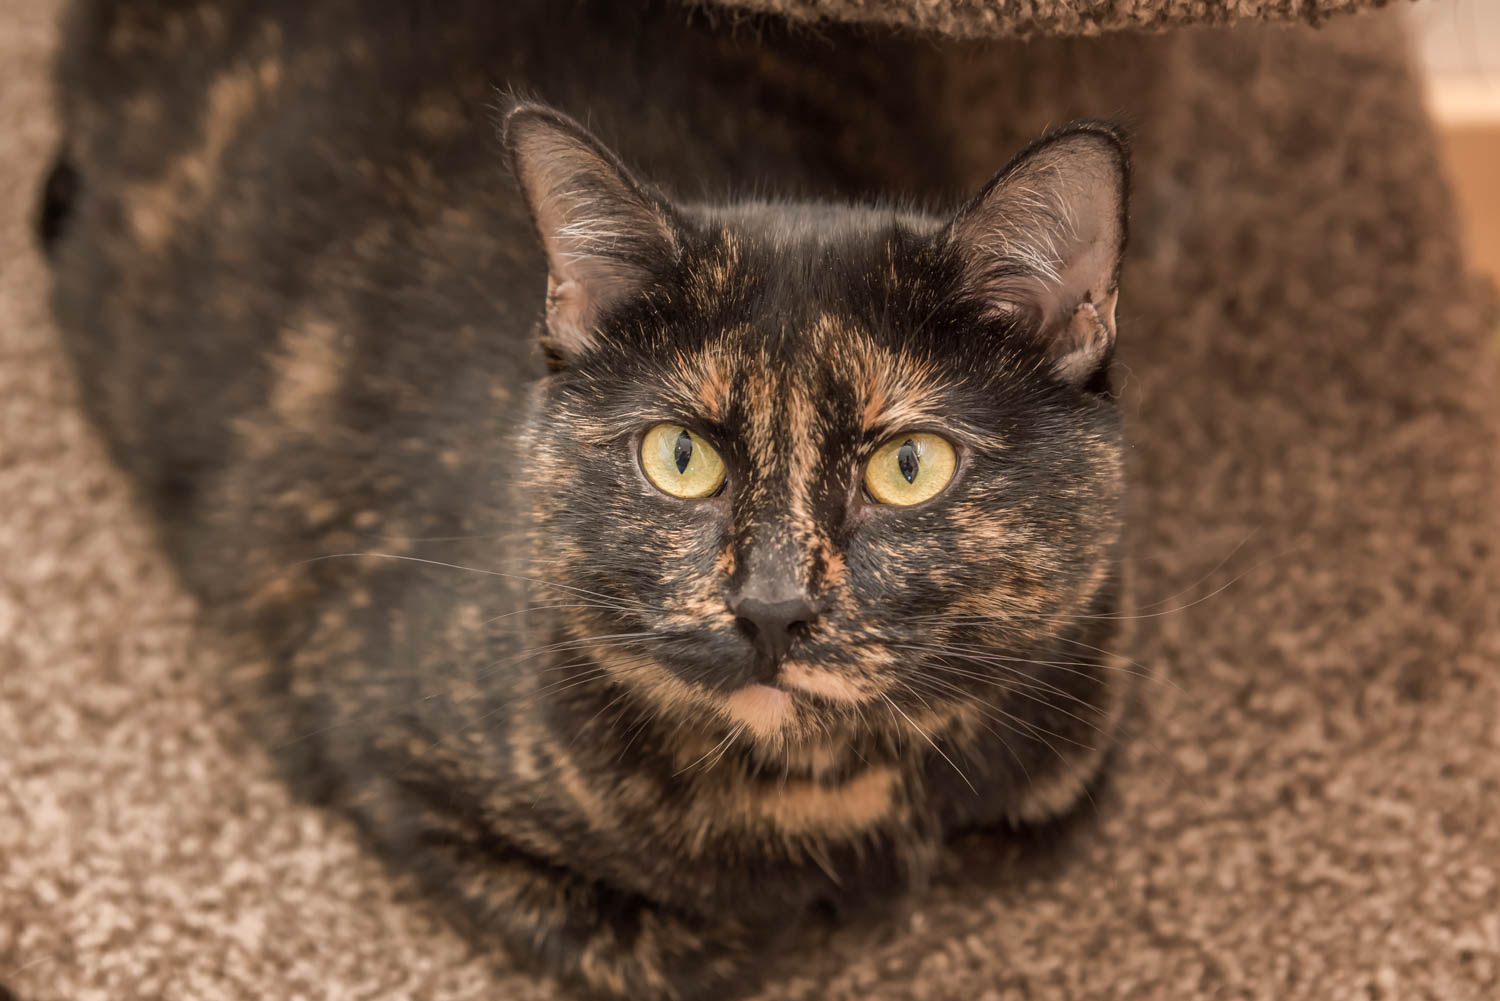 Lisa_Witherley_Happy_Cat_Sanctuary_rescue_cats (24 of 24).jpg